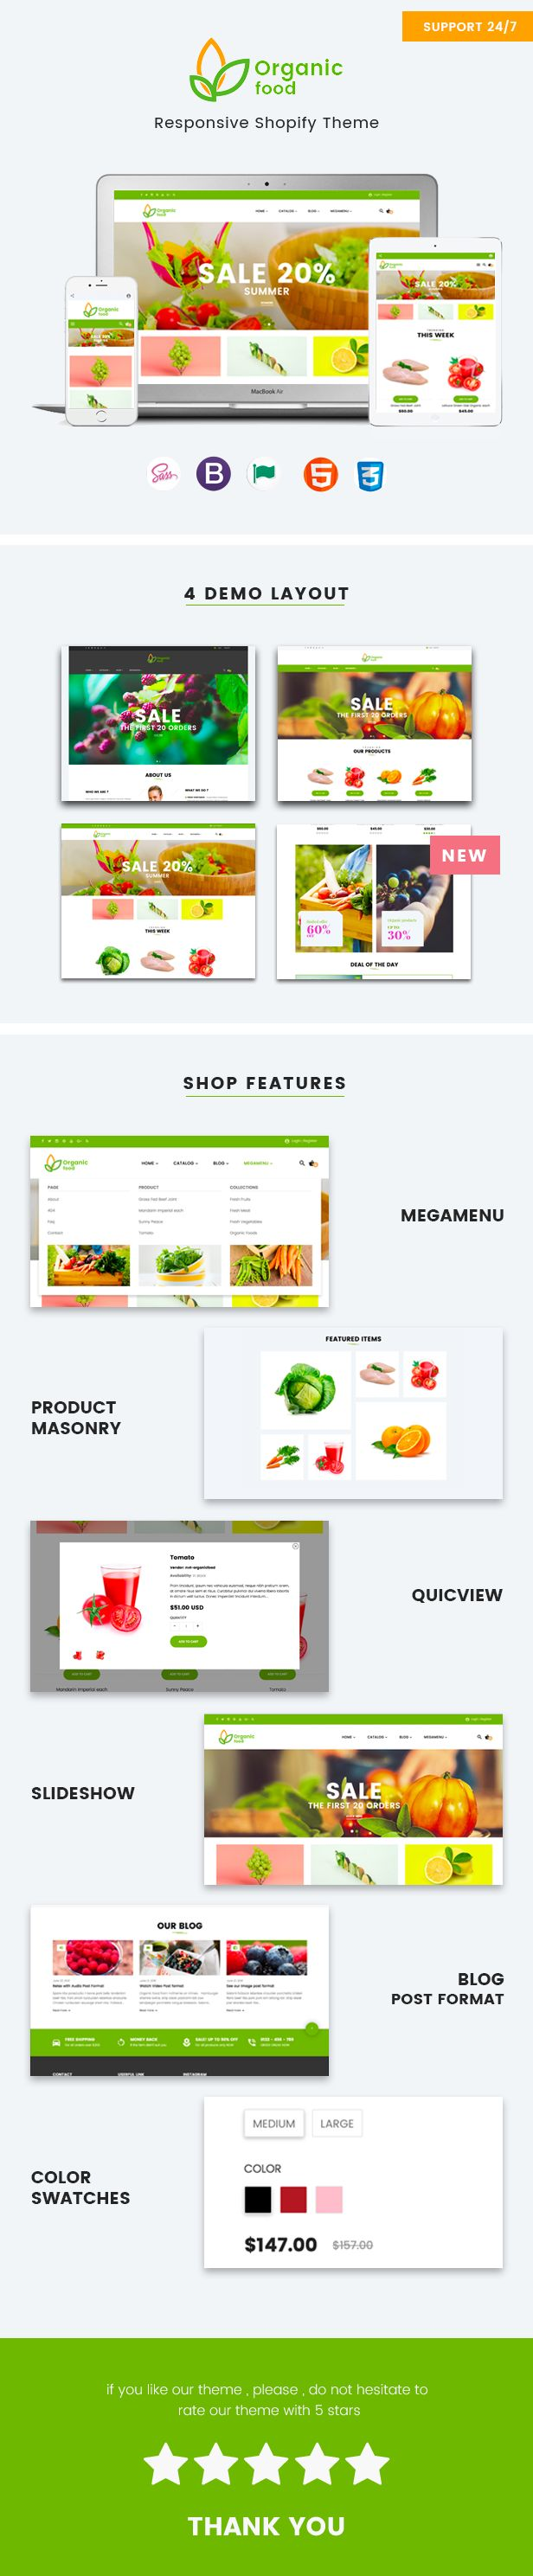 Organic Food, with its excellent clean design, is an ideal option for organic food related websites: agricultural business, healthy food blog, organic food shop, organic farm, bakery, you name it!  The theme has an intuitive visual interface and informative layout that looks wonderful on any platform #food #blog #design